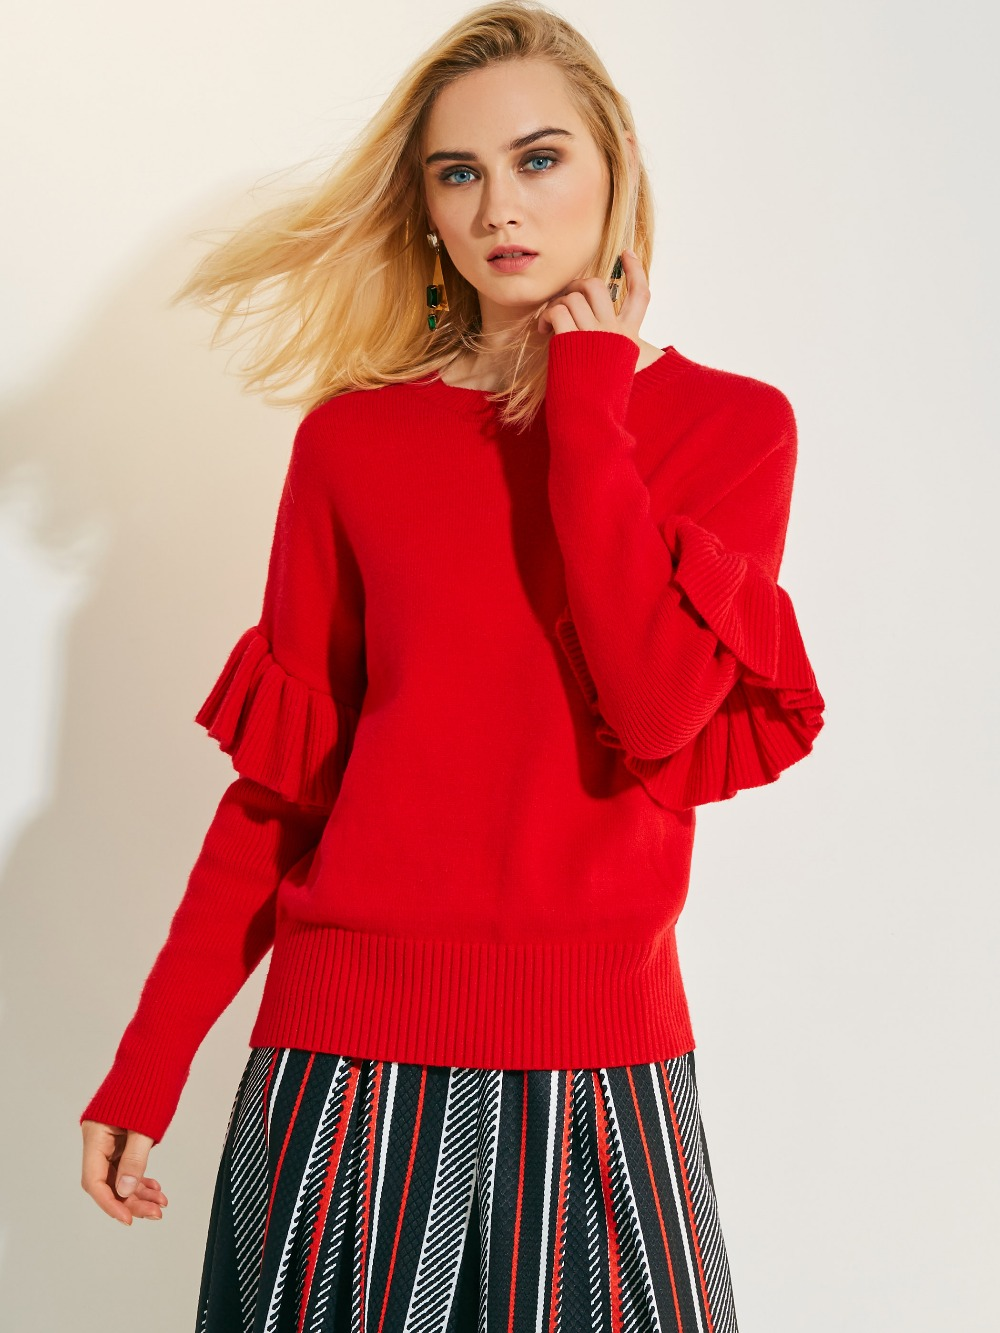 Red Pullover sweater Women 2017 Autumn Long Sleeve O neck Womens Jumpers Slim Sweaters Slim Bodycon Tops Ruffles Sweater